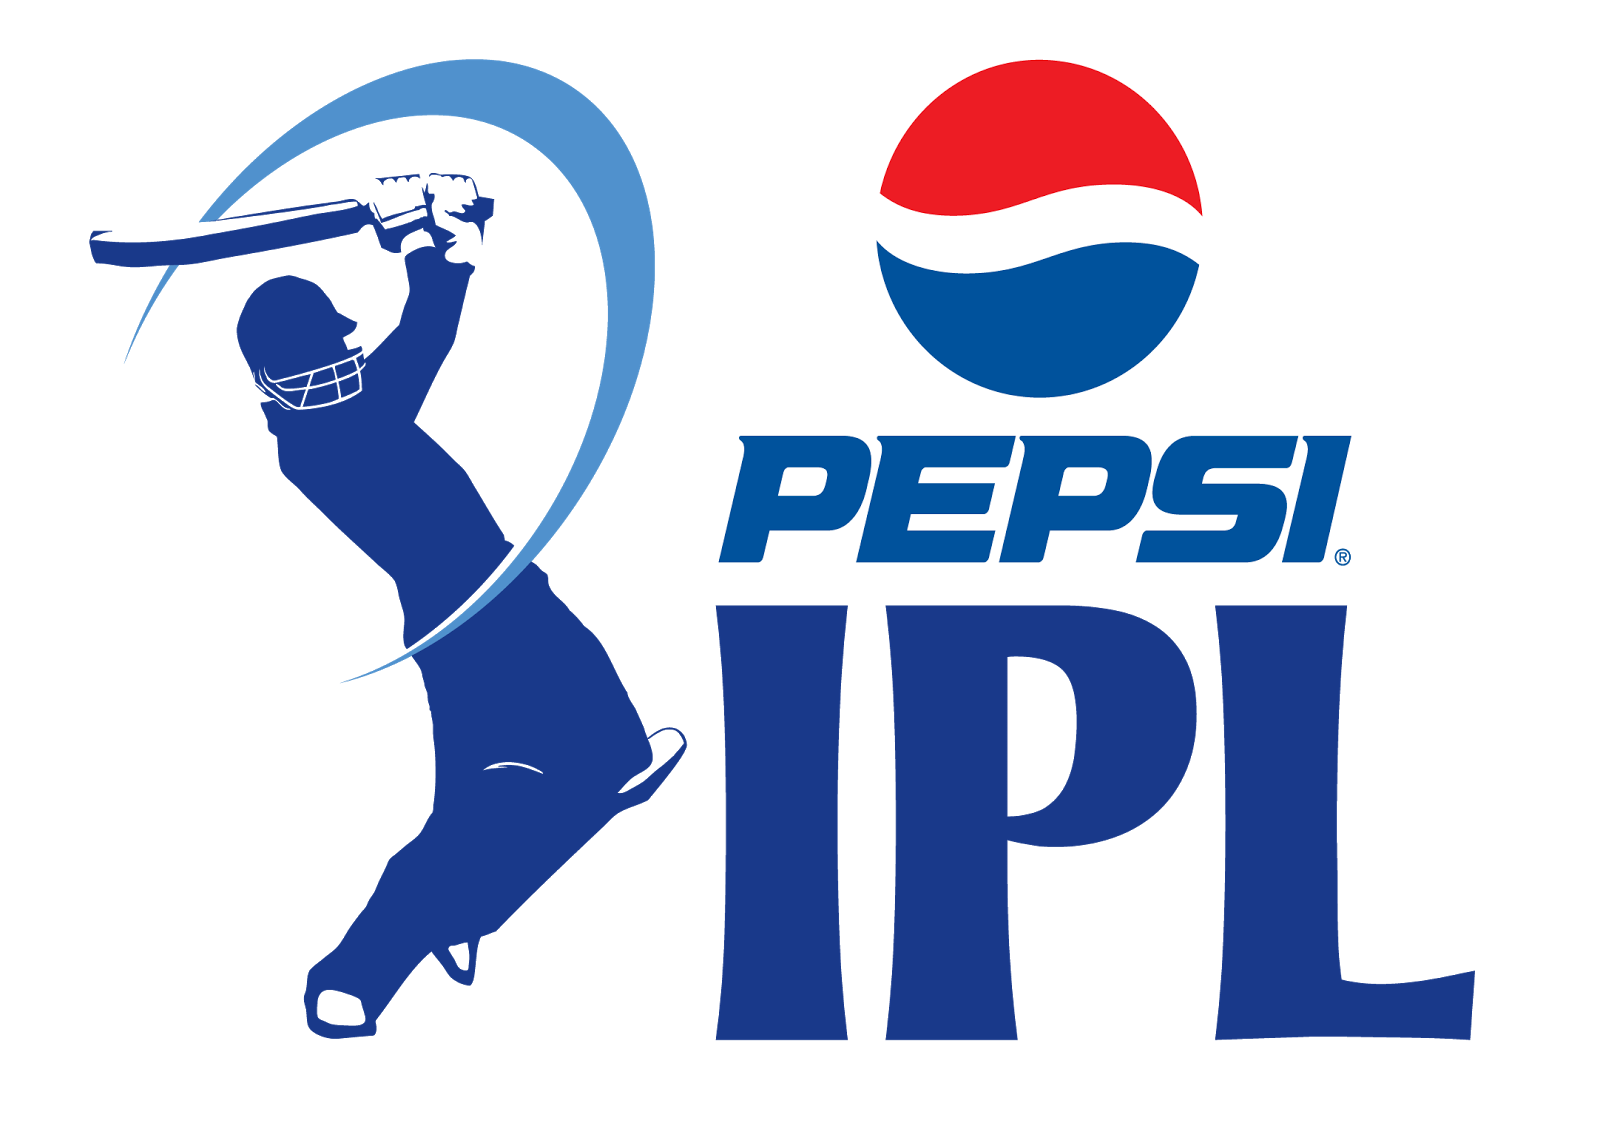 Pepsi IPL live scores,Pepsi IPL on Android,Pepsi IPL on ios